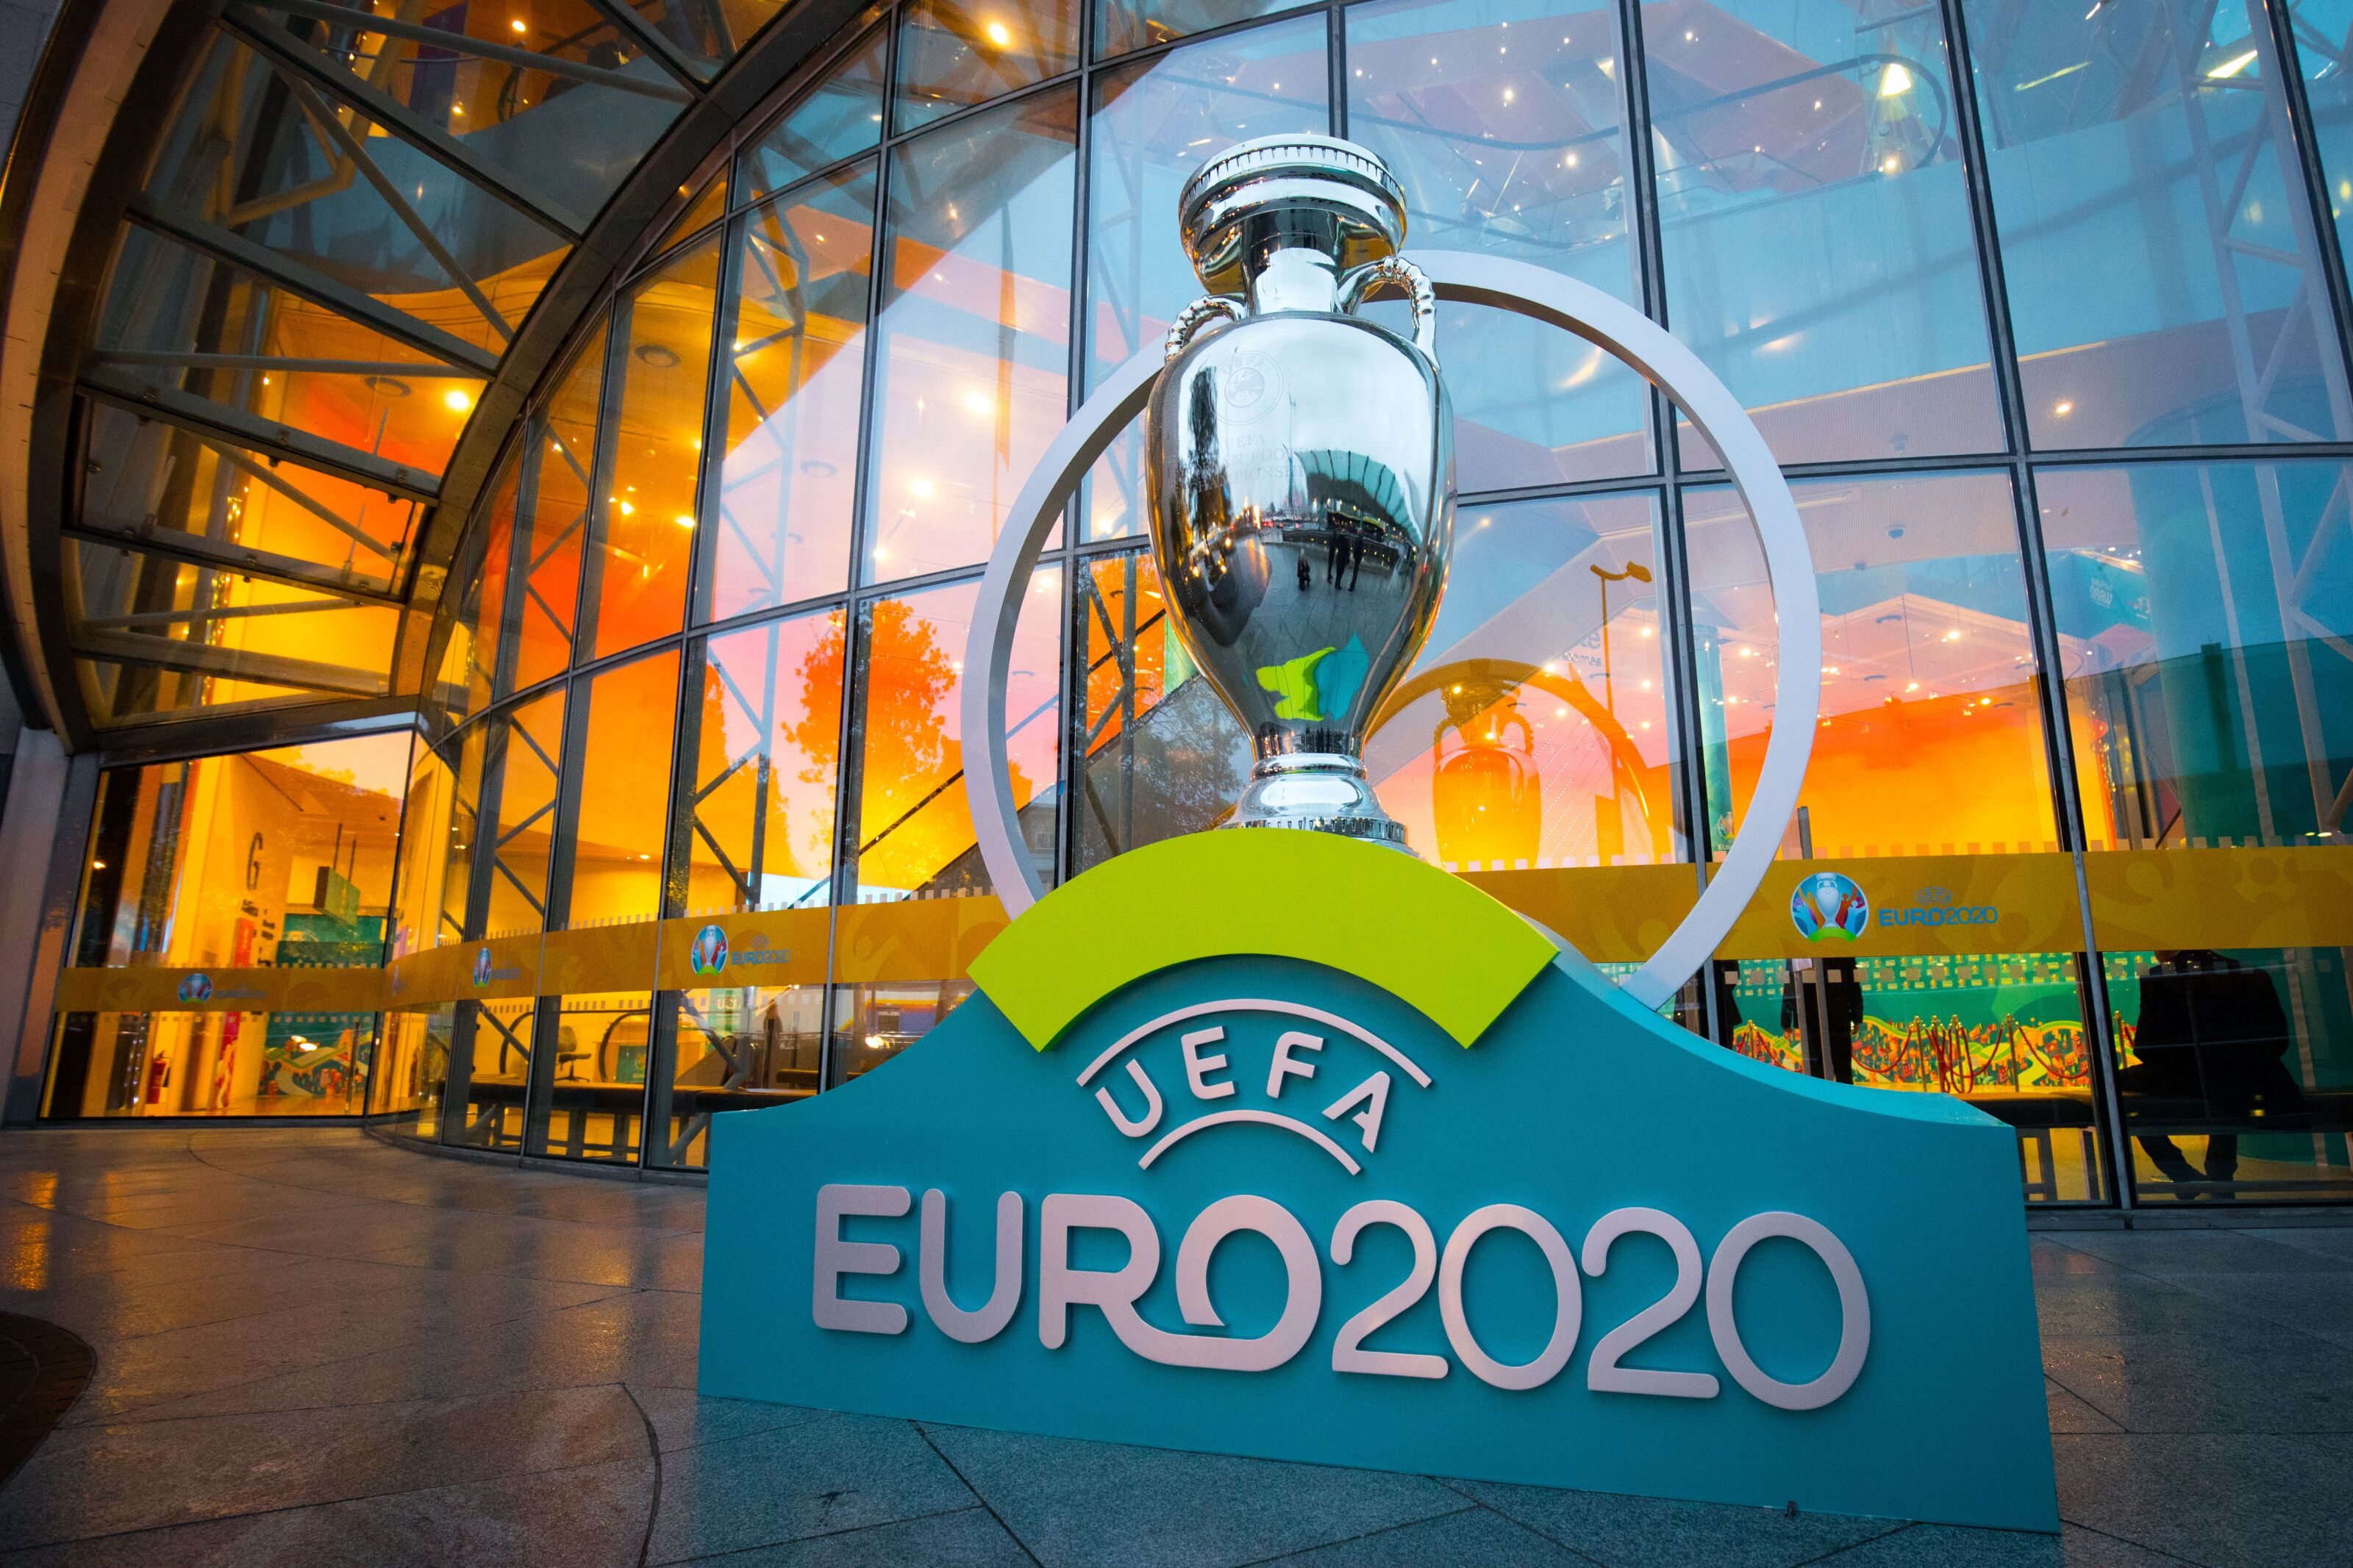 5 storylines to emerge from the 2020 European Championship draw